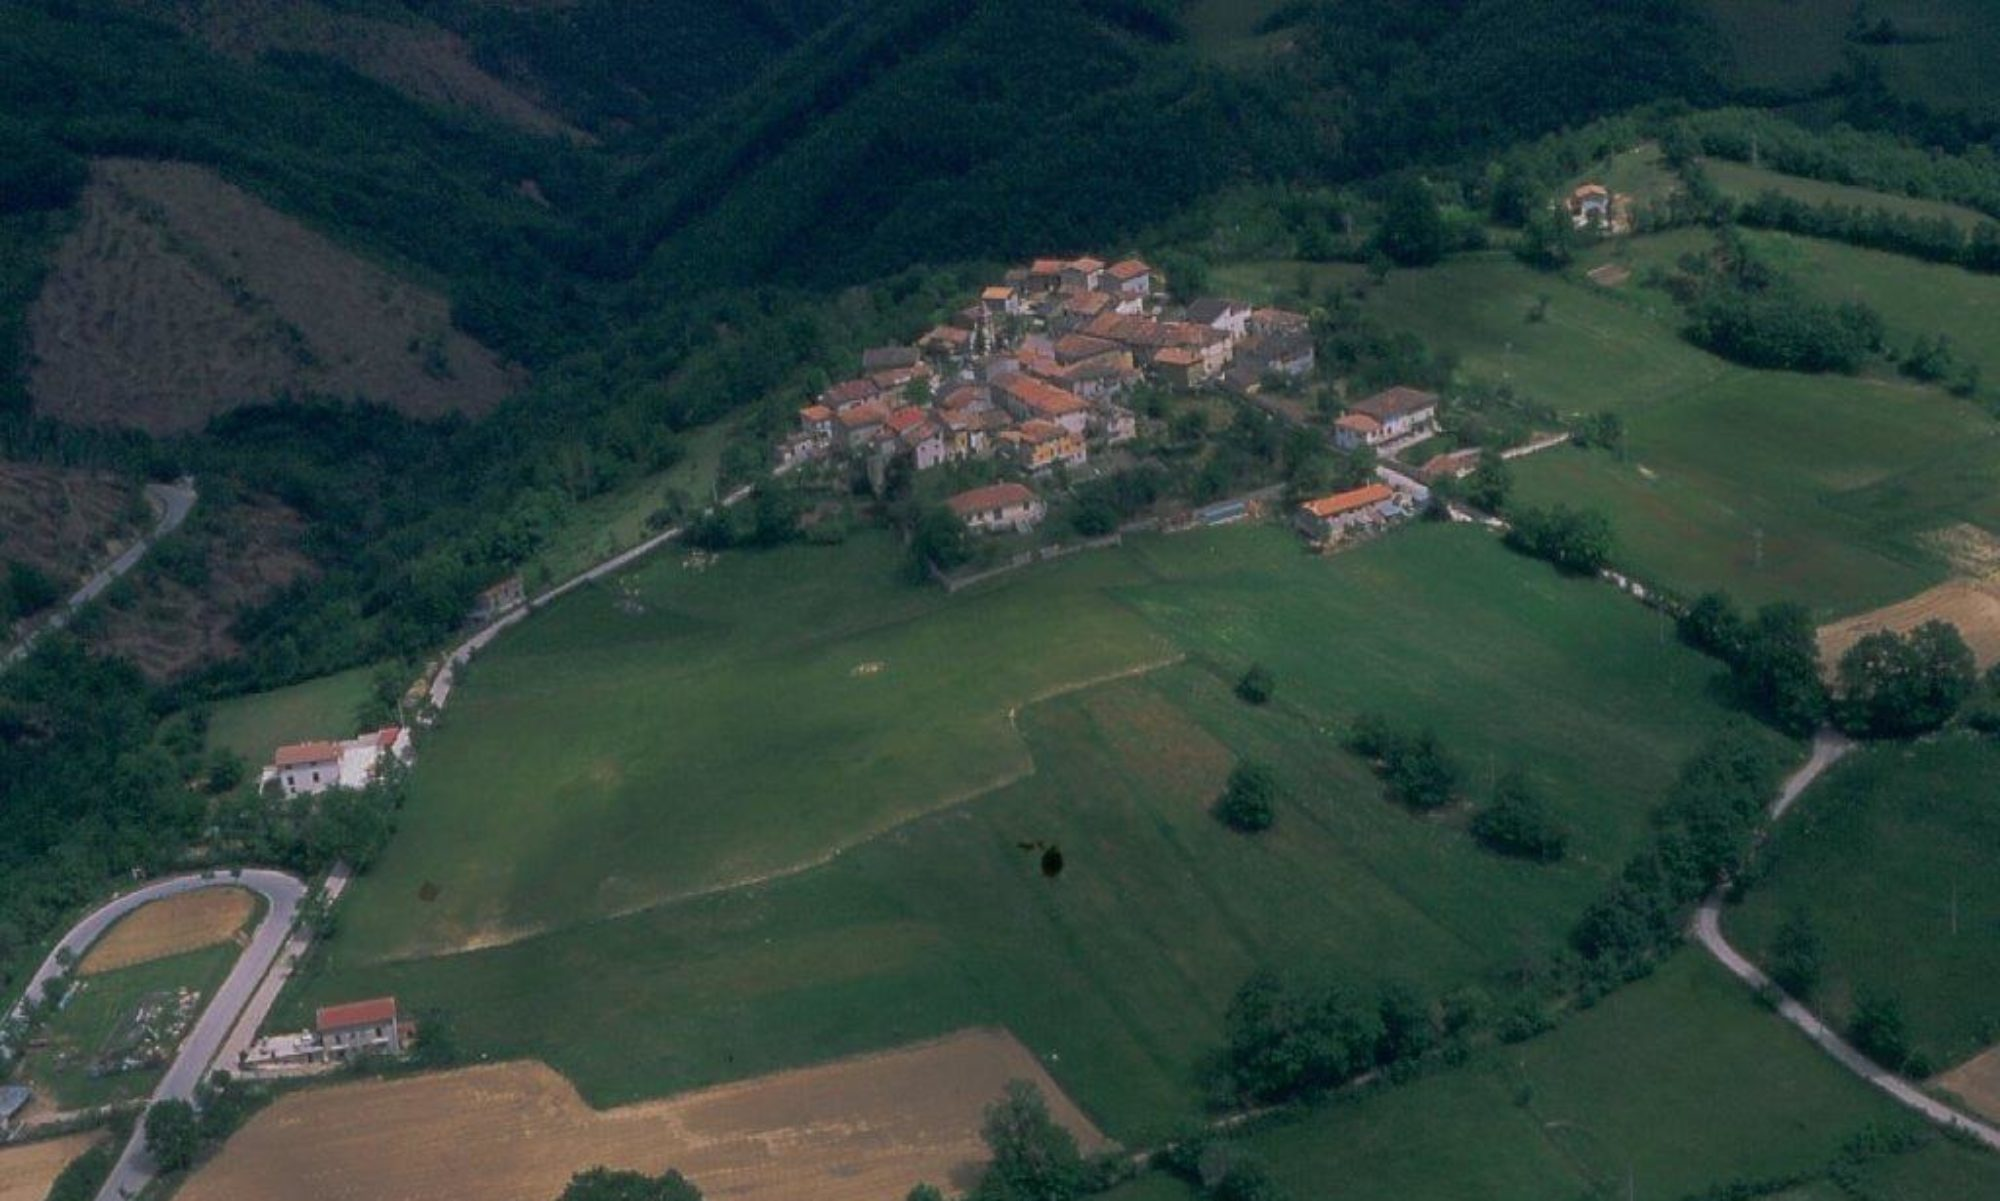 Collegentilesco